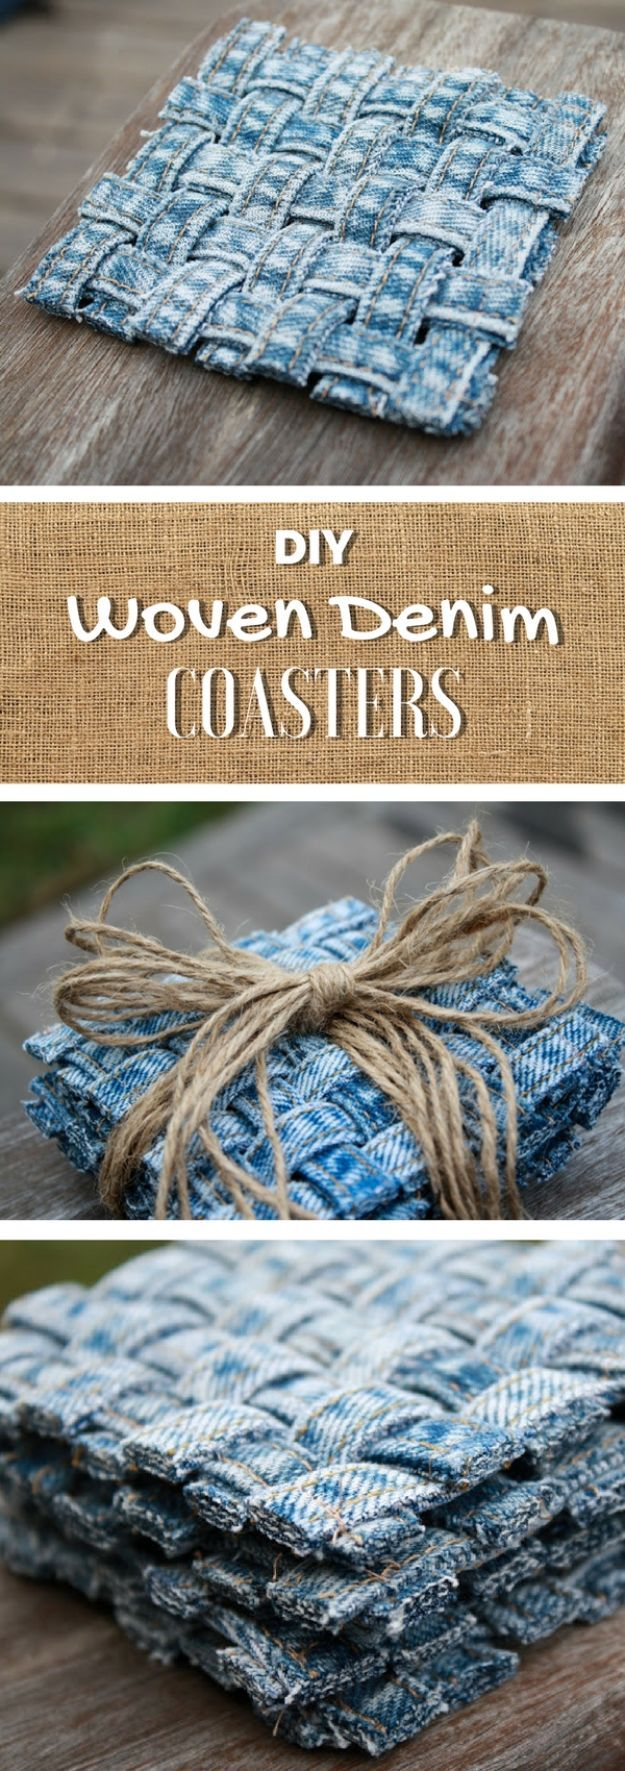 Blue Jean Upcycles – Woven Jean Seam Coasters – Ways to Make Old Denim Jeans Int…